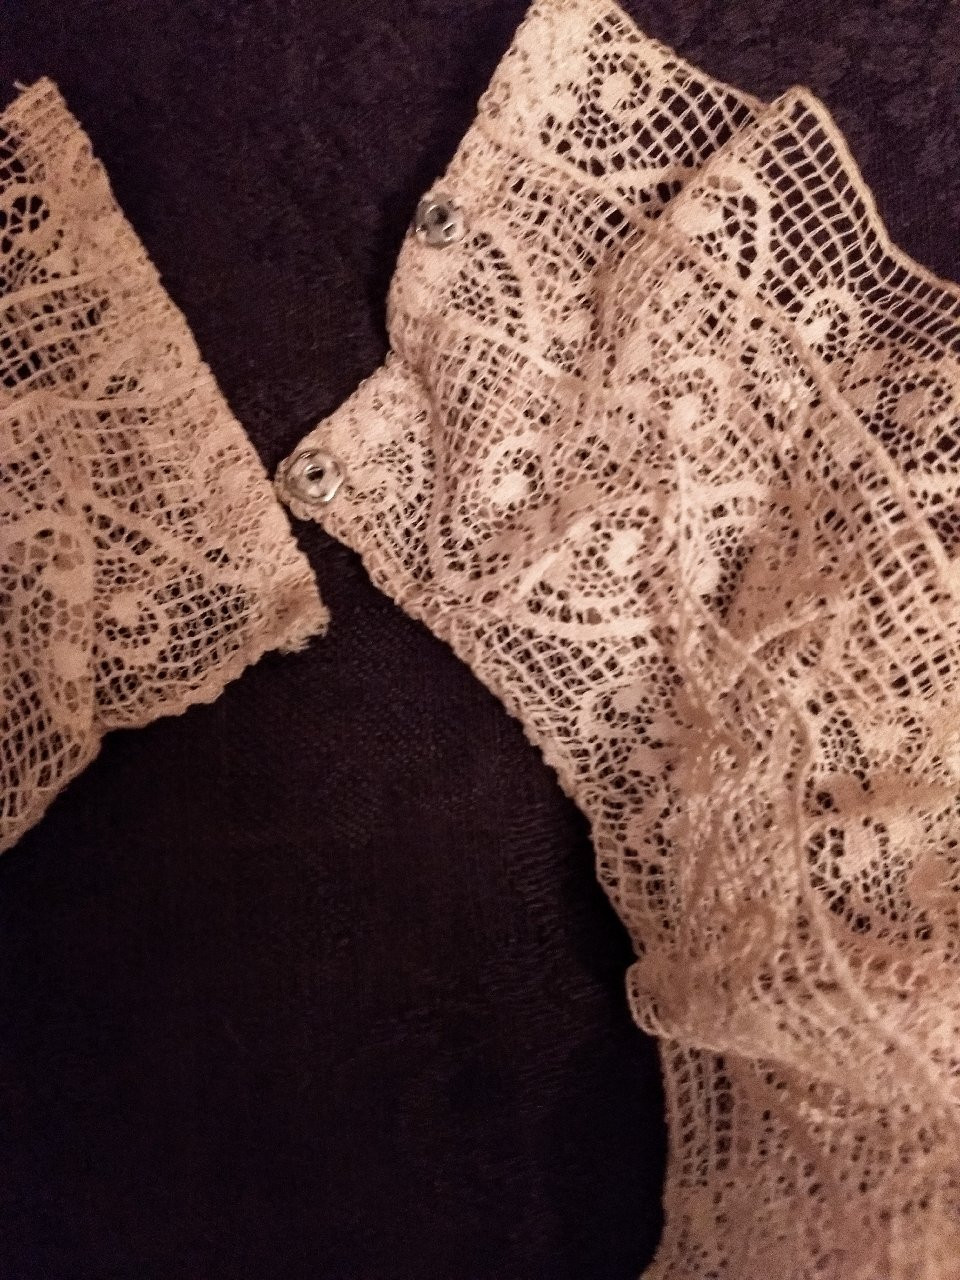 Vintage 1920 Lace Collar Bib Home Sewn Insertion Lace Trim